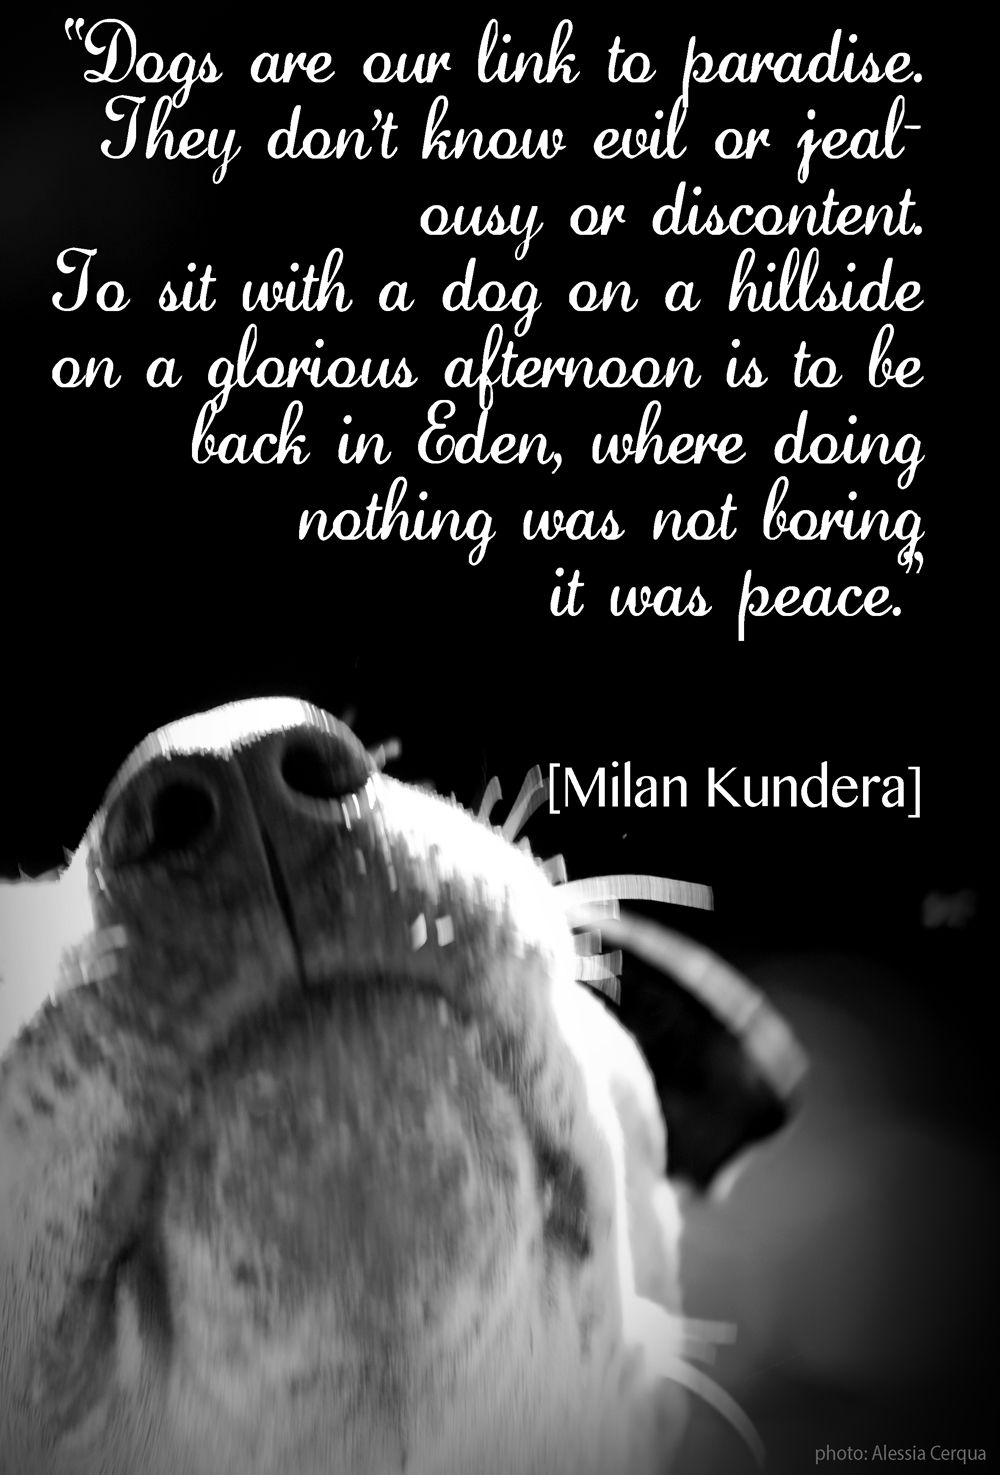 Doggie Wisdom on Pinterest | Dog Quotes, Dogs and Wisdom